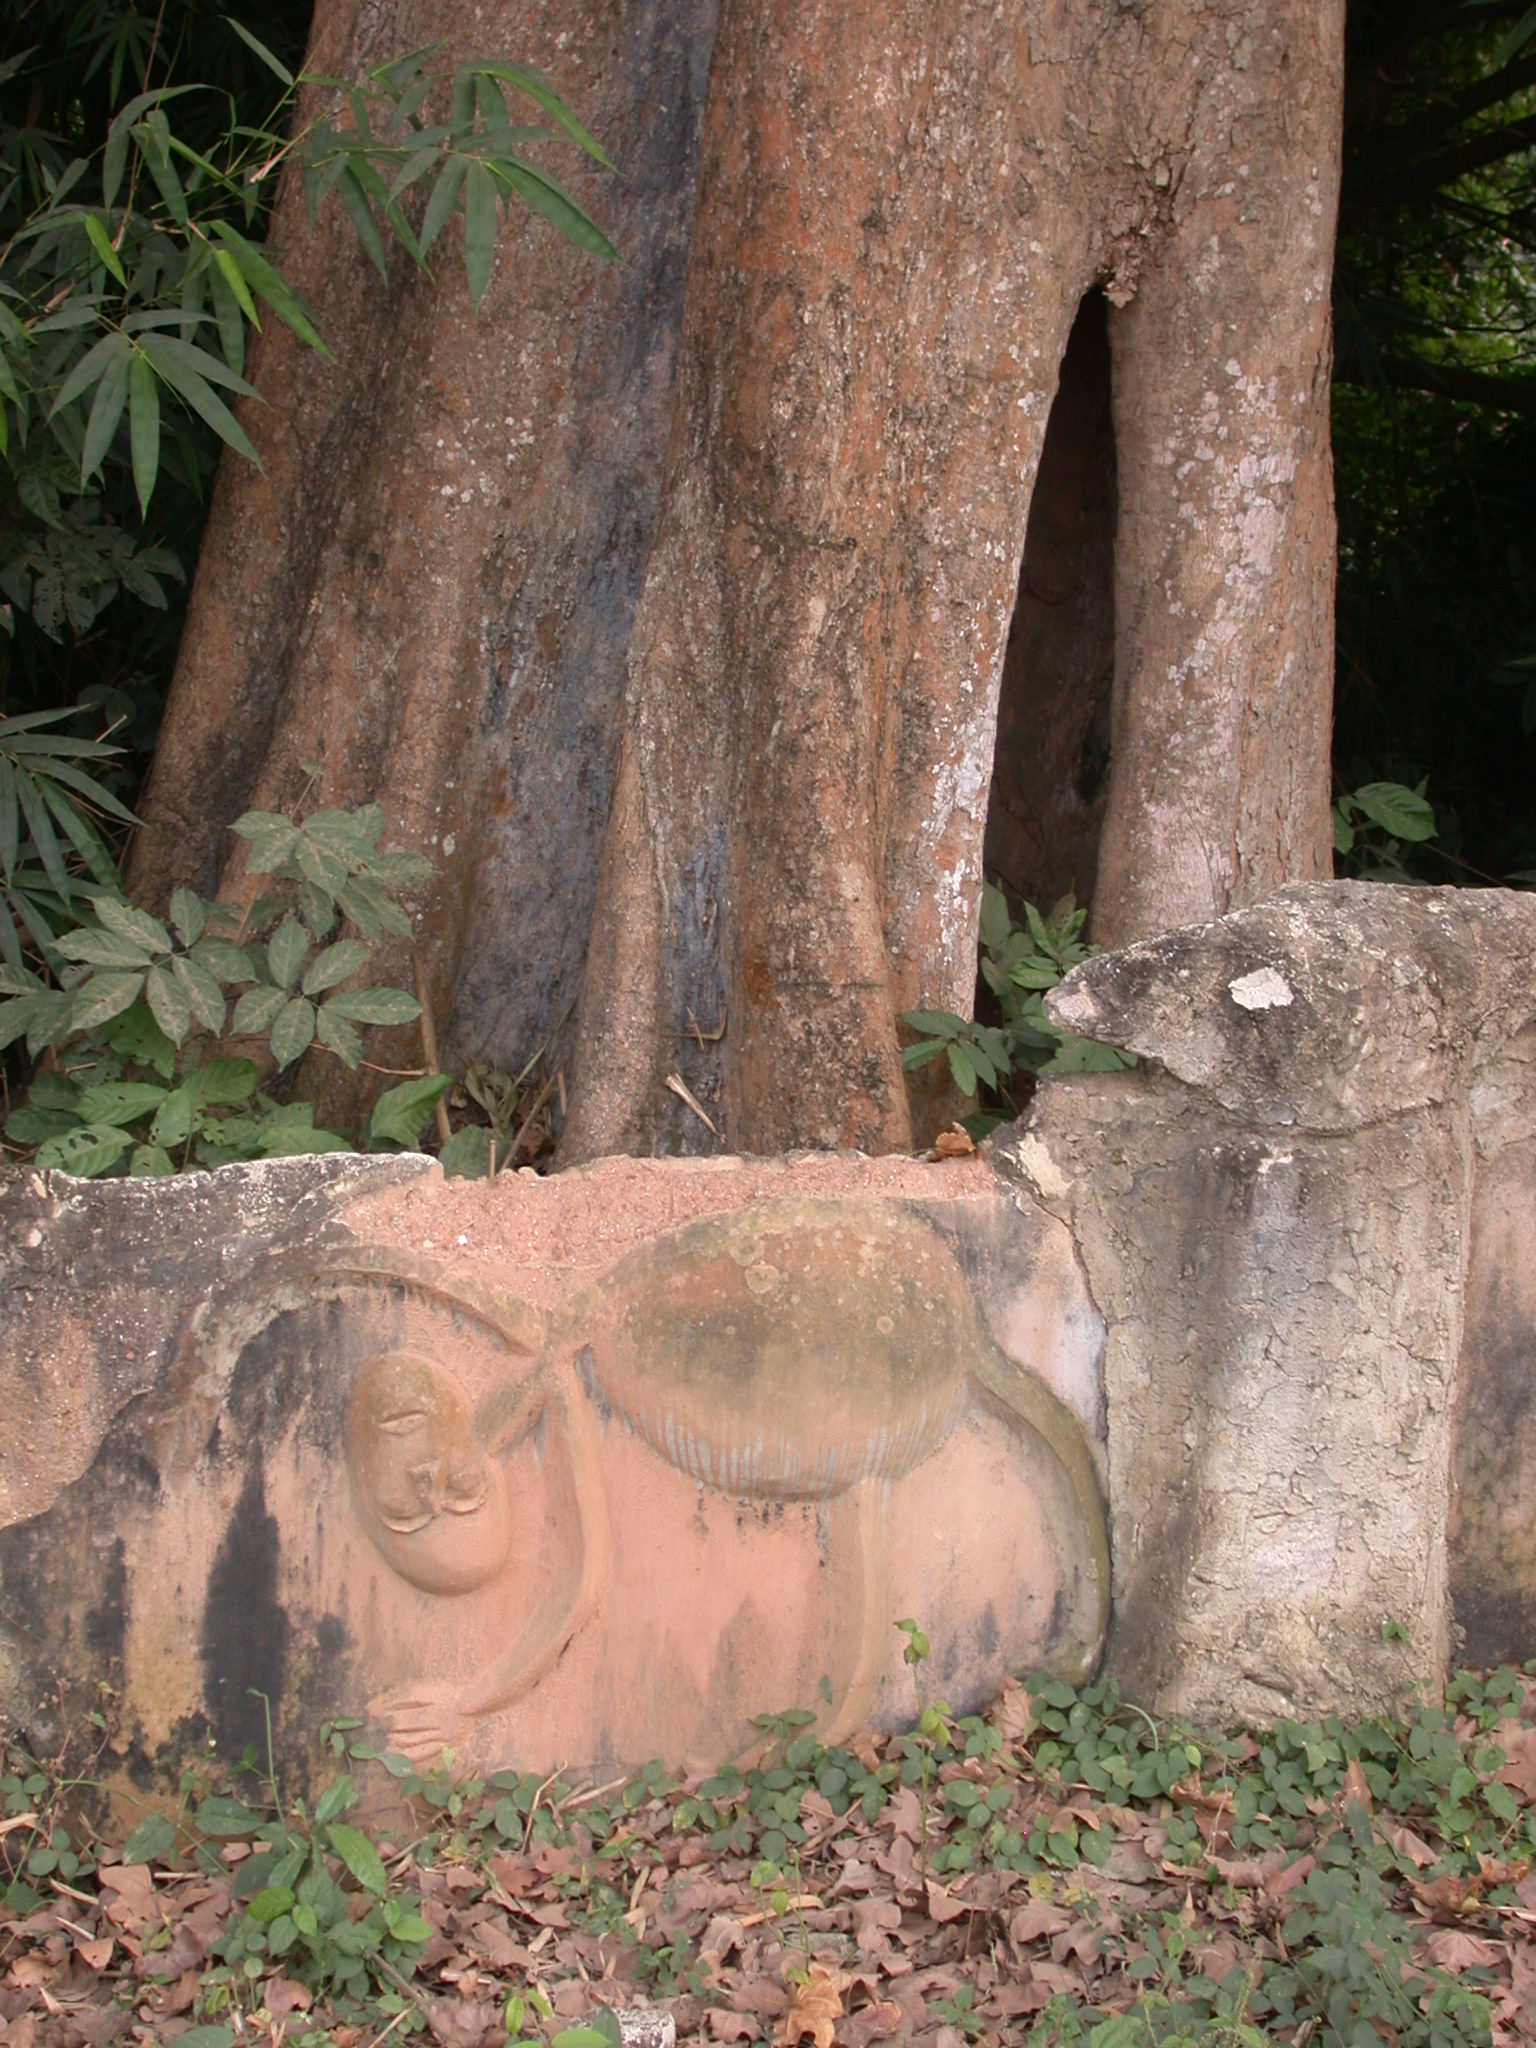 Sculpture Shrine and Hollow Tree on Access Road, Osun Sacred Grove, Oshogbo, Nigeria